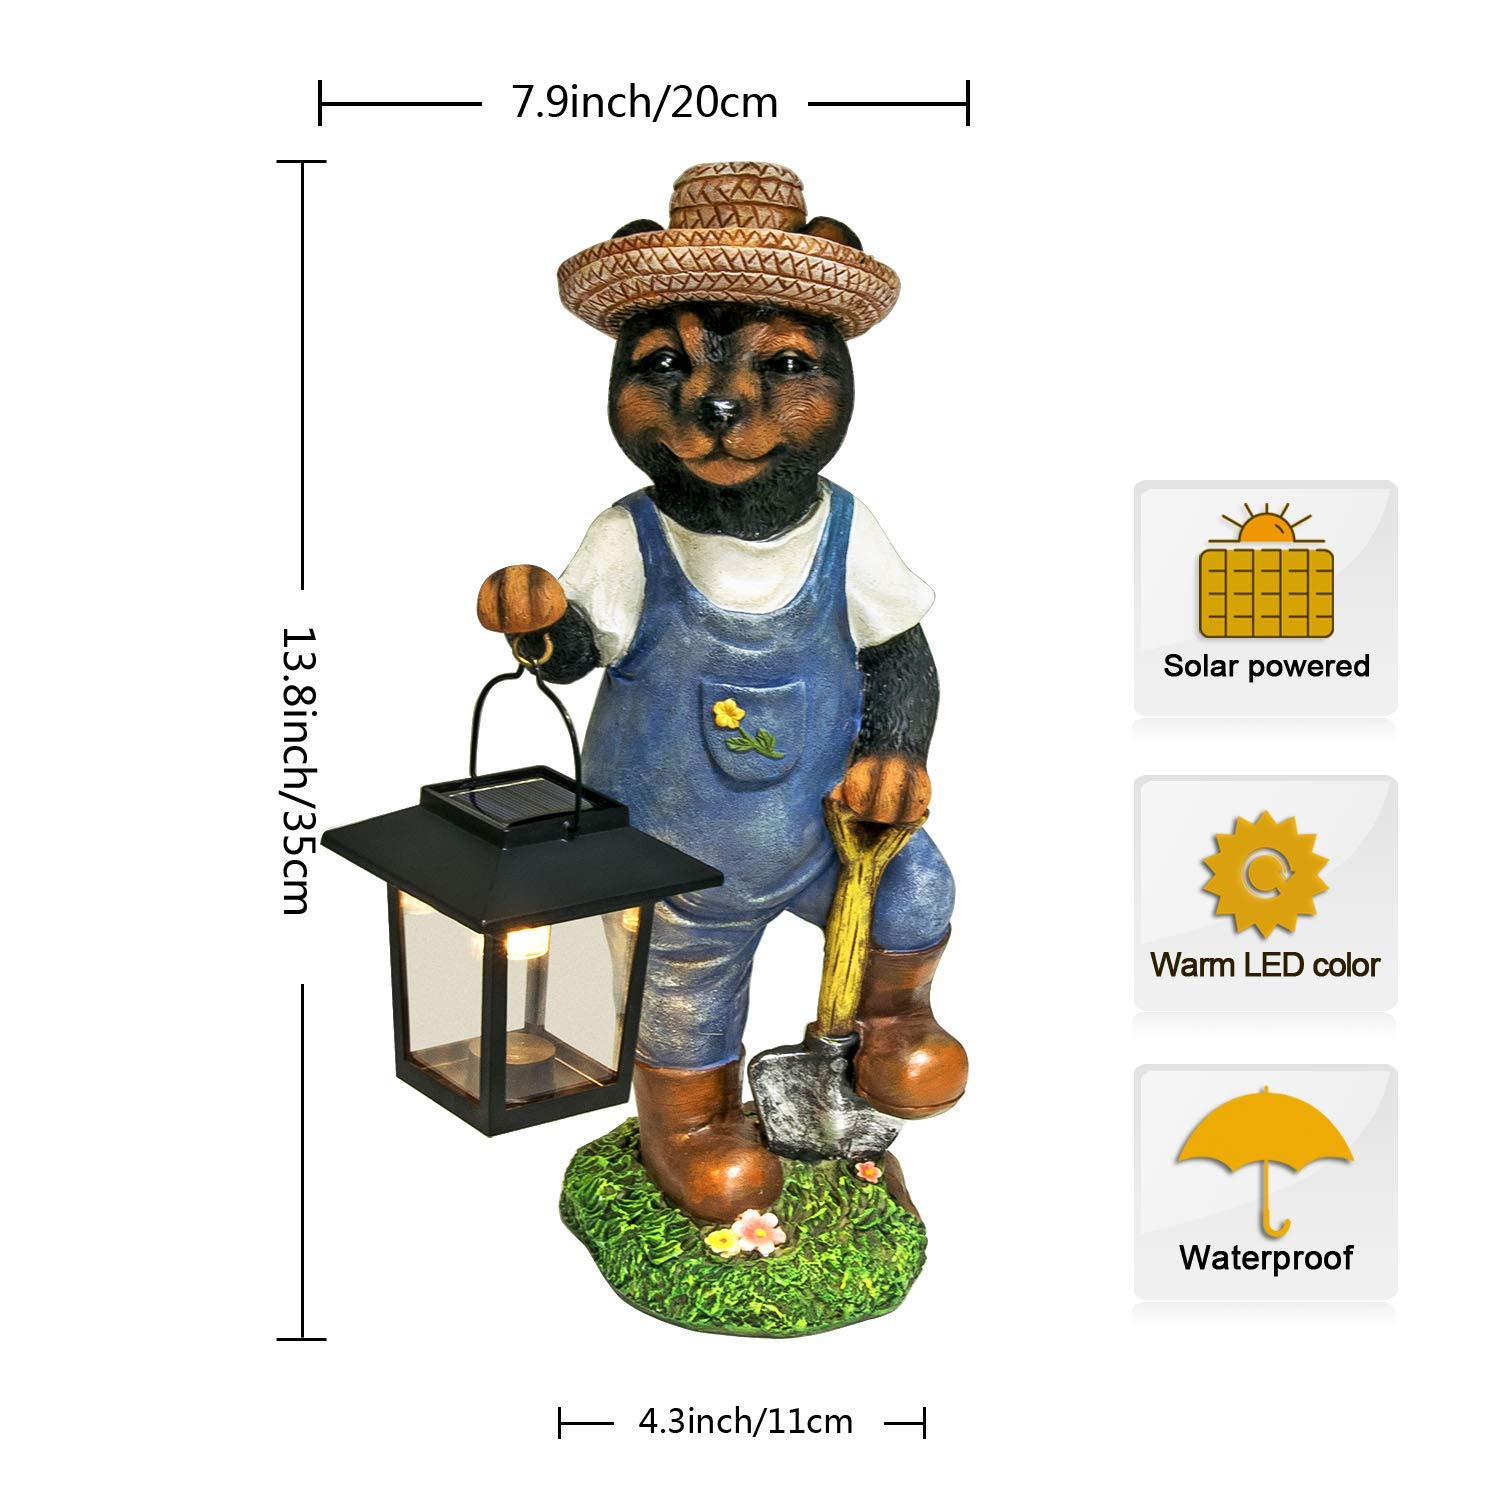 Lawn Ornaments and Gardening Housewarming Gifts with Solar Animals Bear Garden Statue Bear Figurine with Solar Powered LED Lights for Outdoor Garden Yard Decoration 13.8x7.9